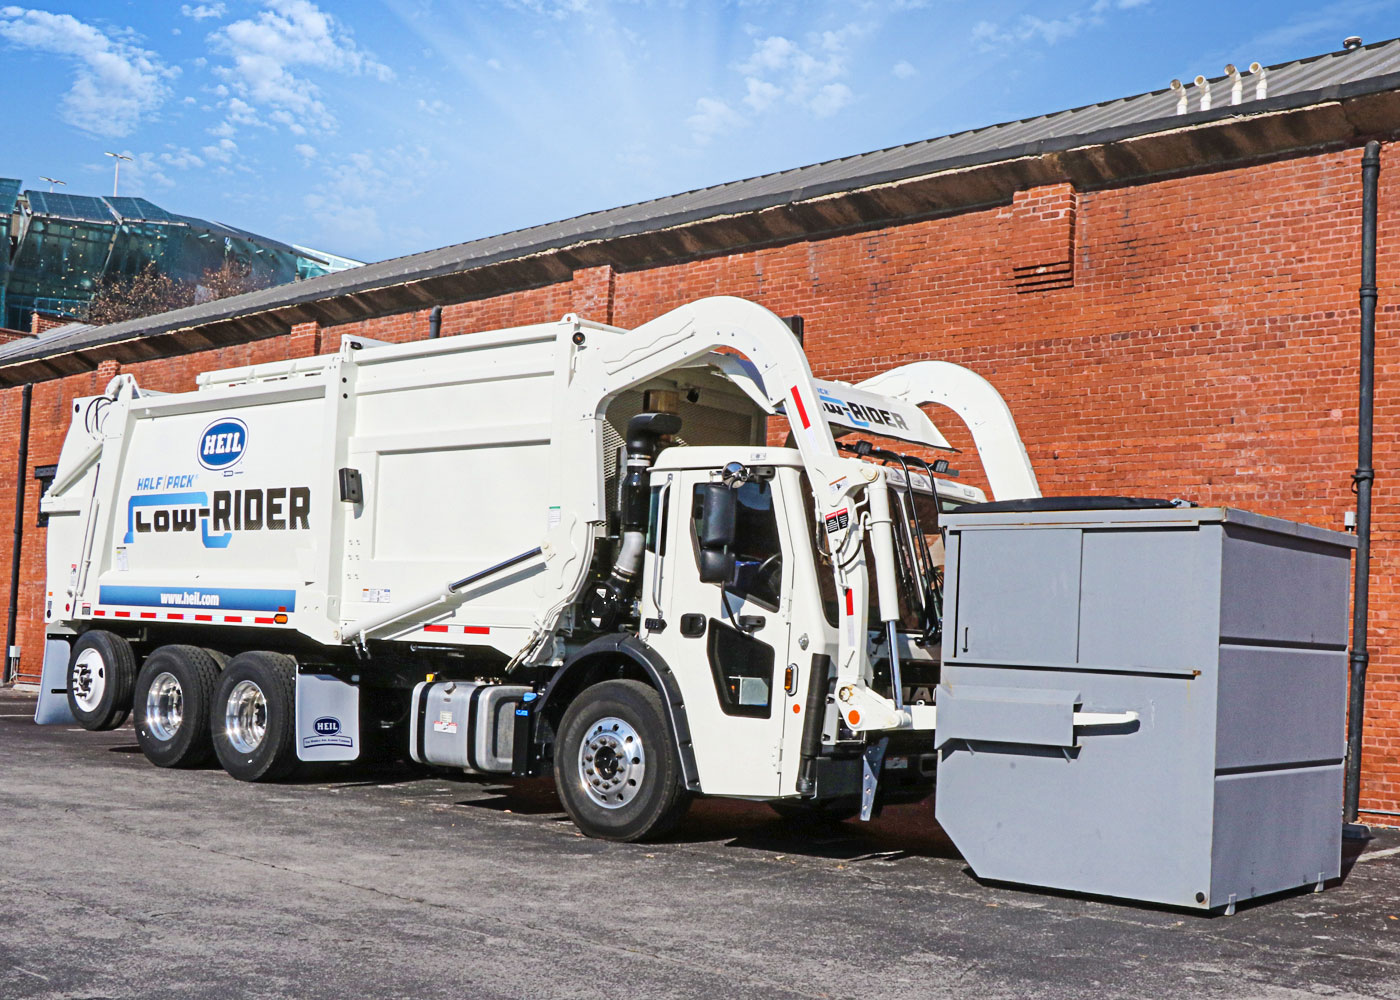 LowRider Commercial Frontload Garbage Trucks